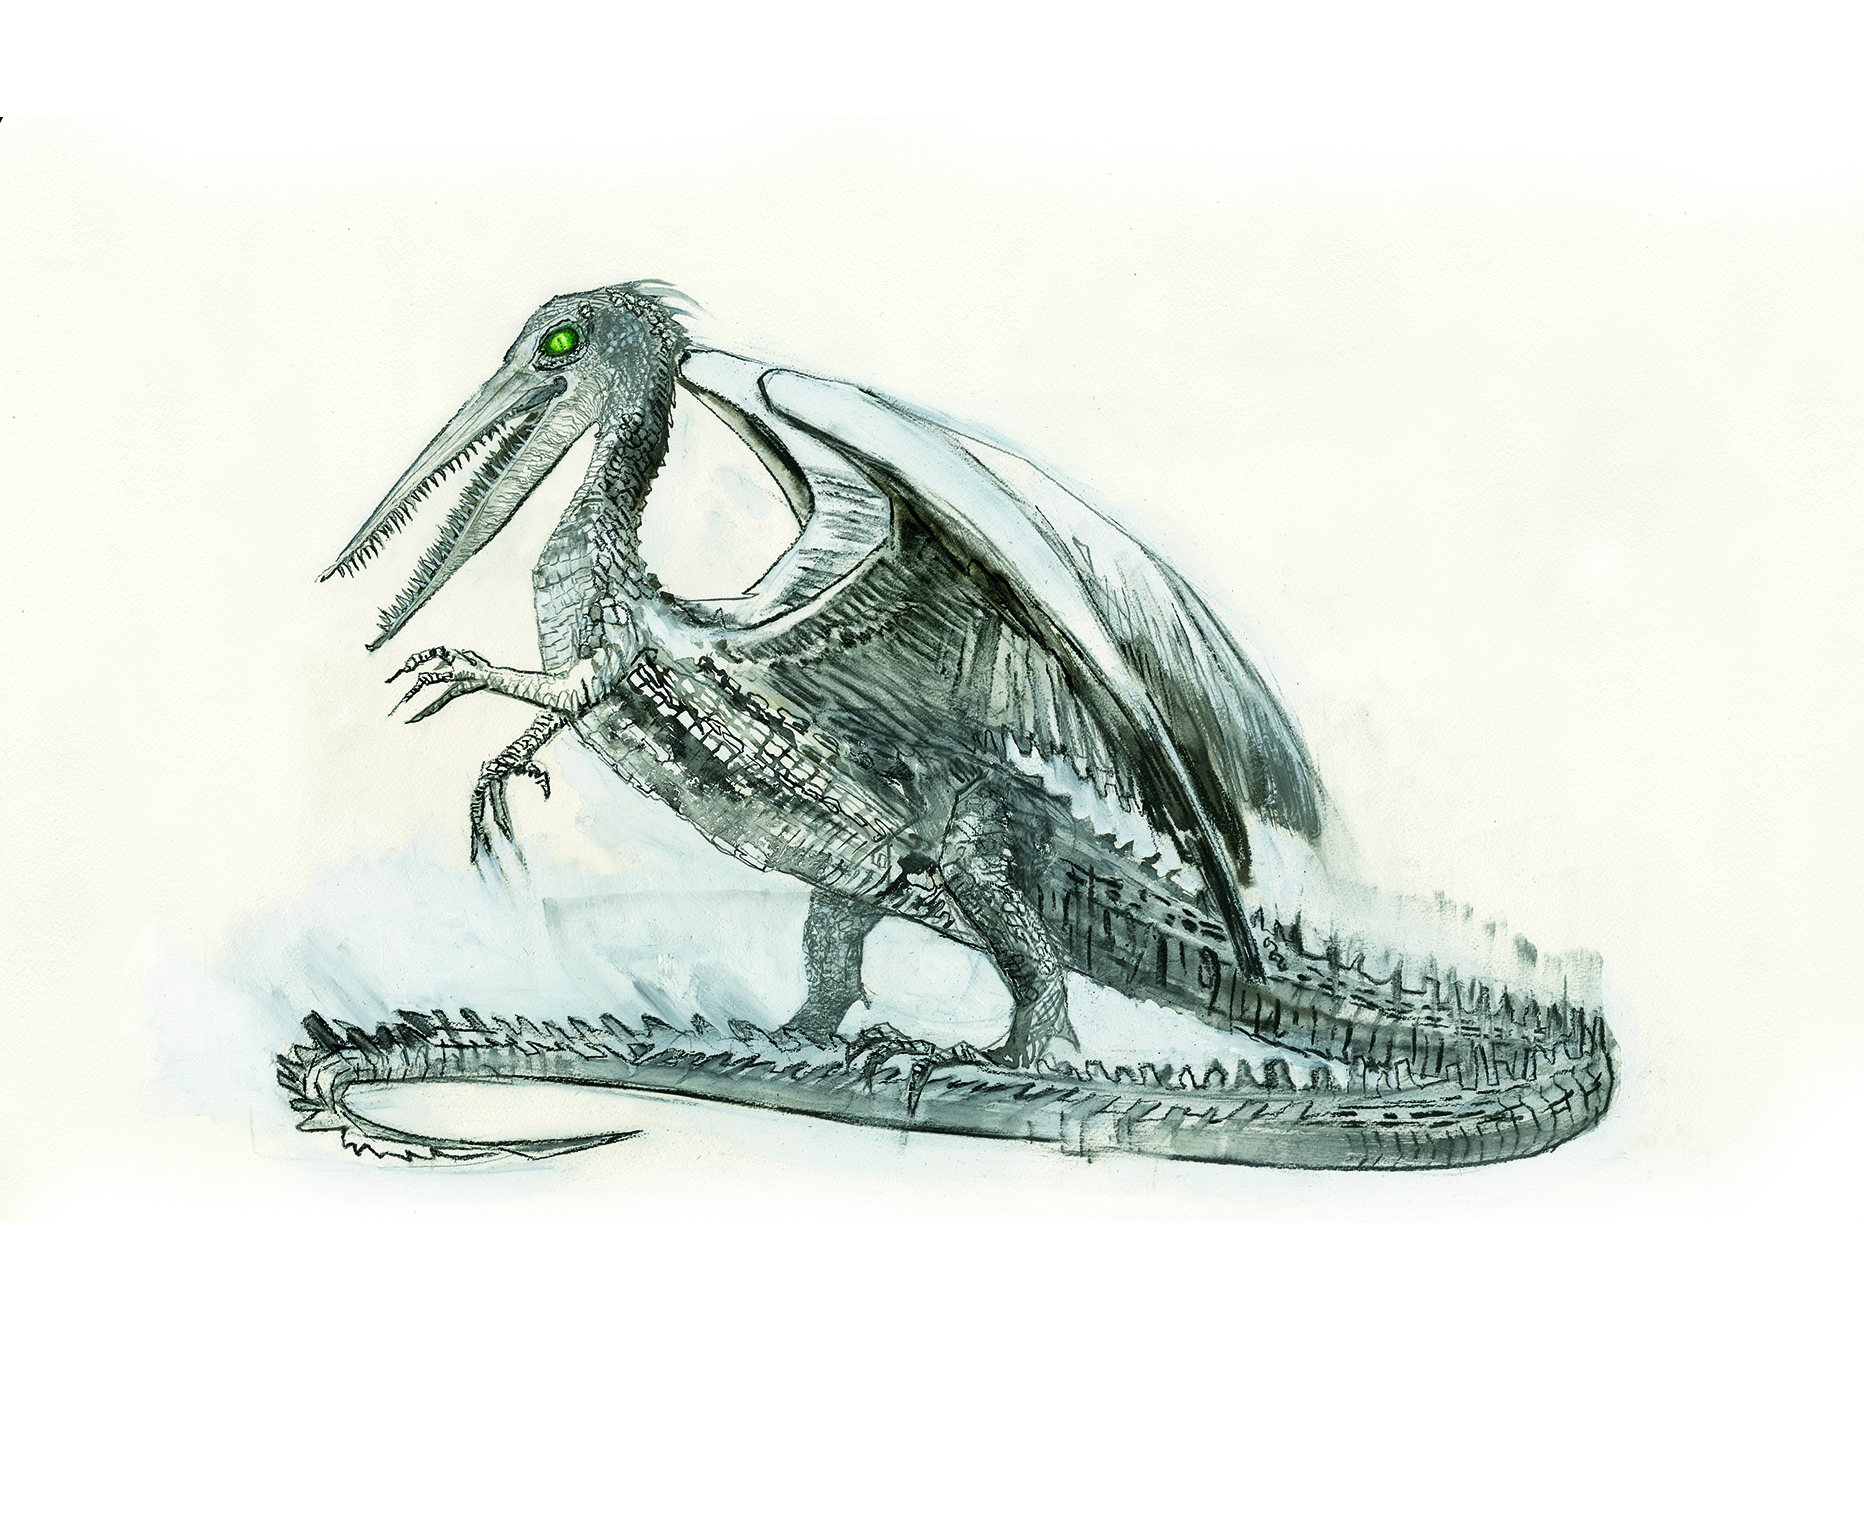 Illustration Of A Snallygaster From The New Edition Fantastic Beasts And Where To Find Them